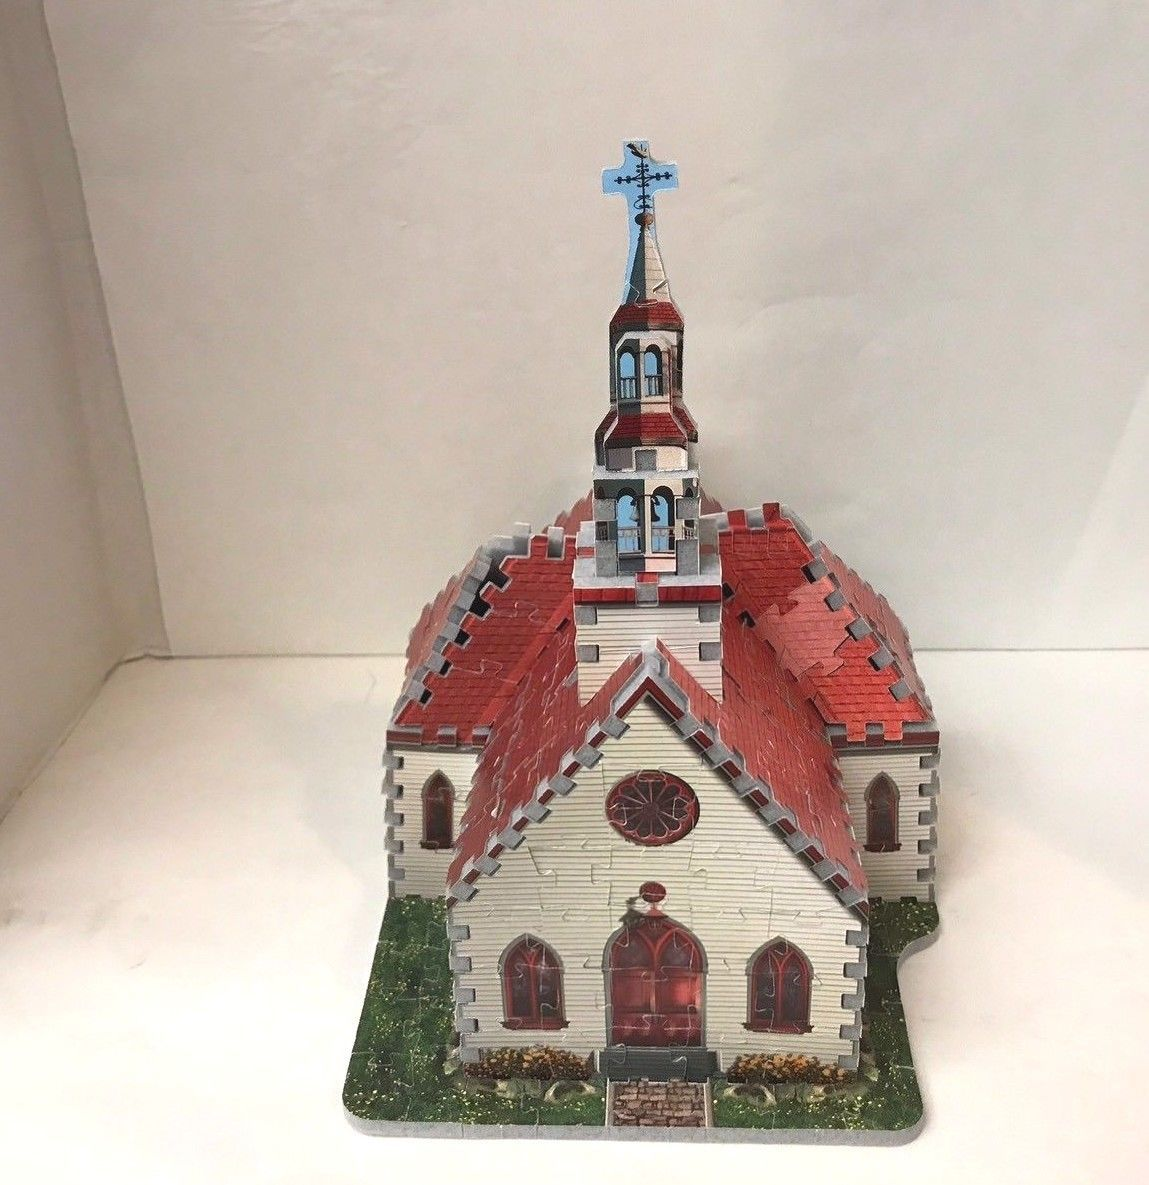 Primary image for Foam Puzzle Wrebbit 3 Dimensional Country Church 254 Pieces  1995 Hasbro MB